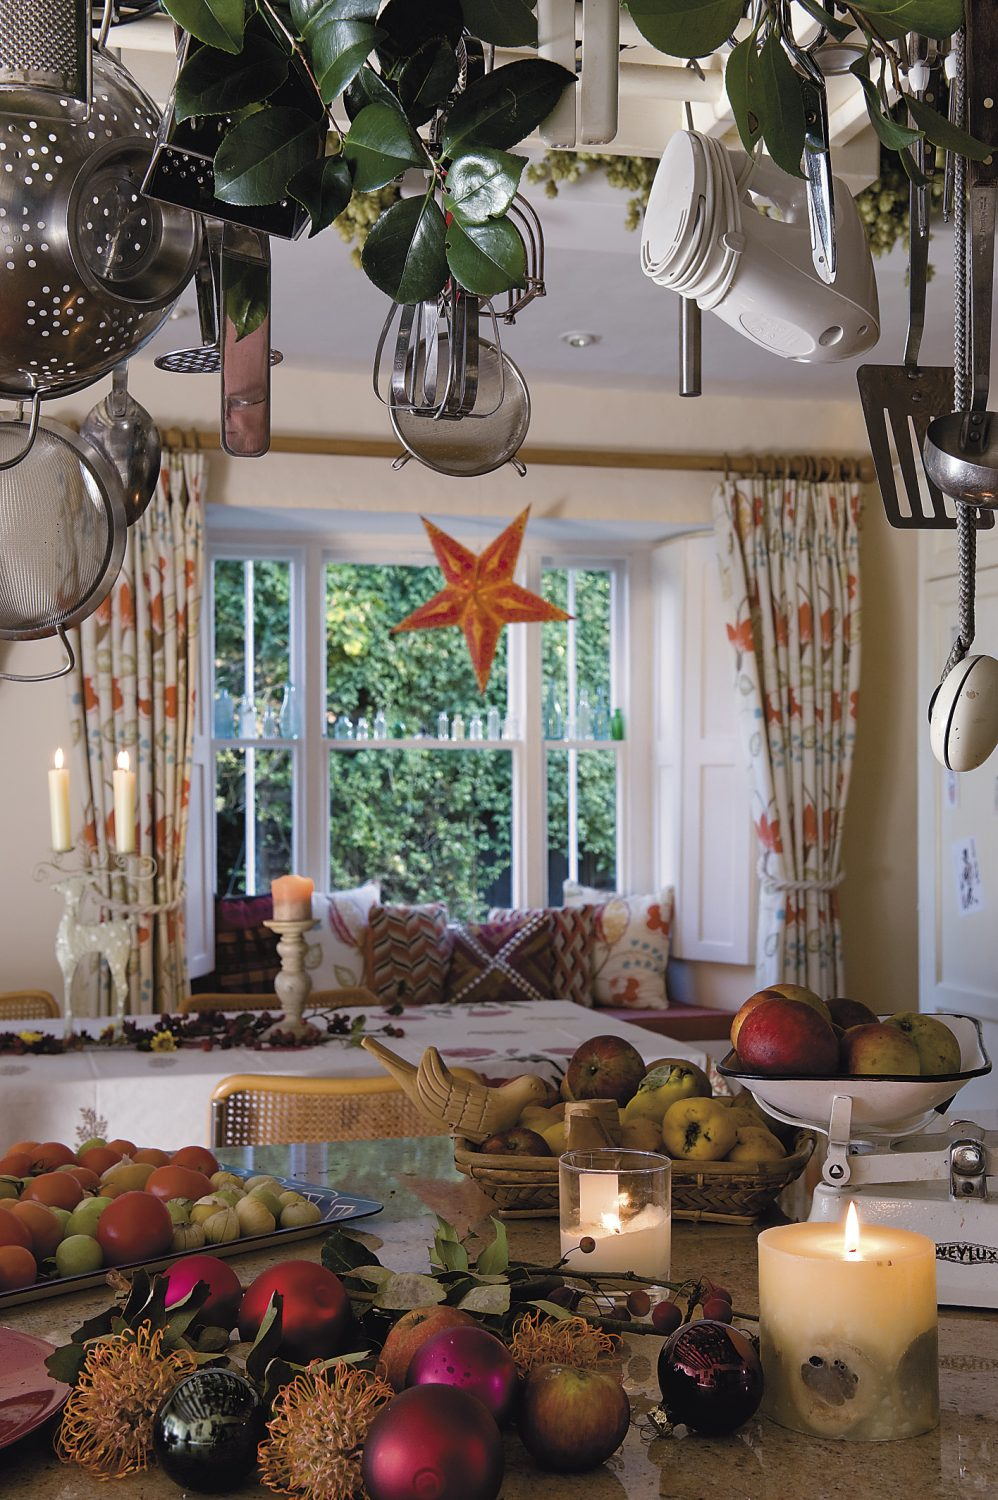 stars like the one in this bay window in the kitchen are a regular sight in India over Christmas